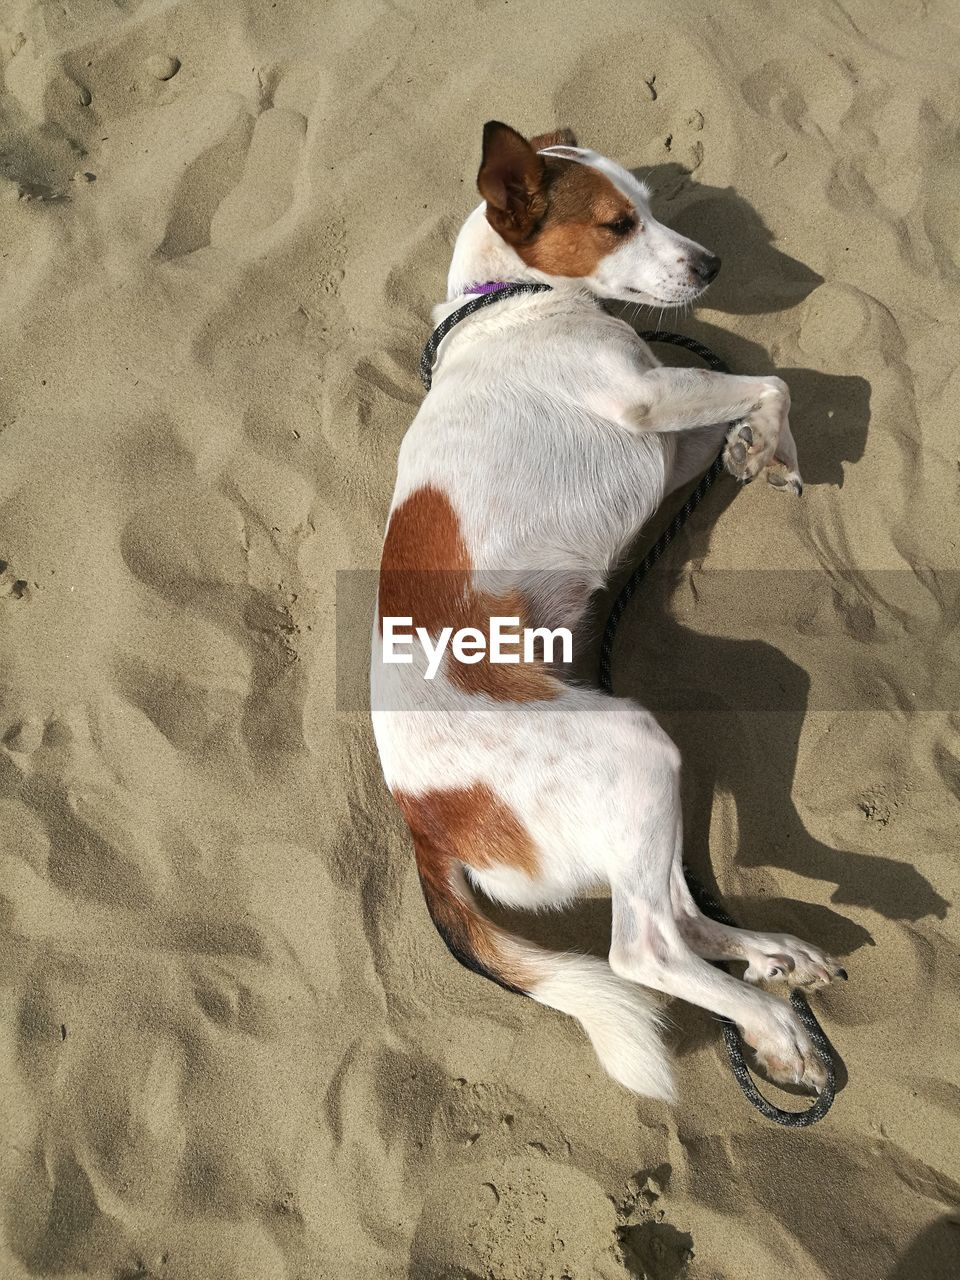 domestic, mammal, pets, one animal, domestic animals, animal themes, animal, canine, dog, sand, vertebrate, high angle view, beach, land, relaxation, no people, day, full length, lying down, flooring, jack russell terrier